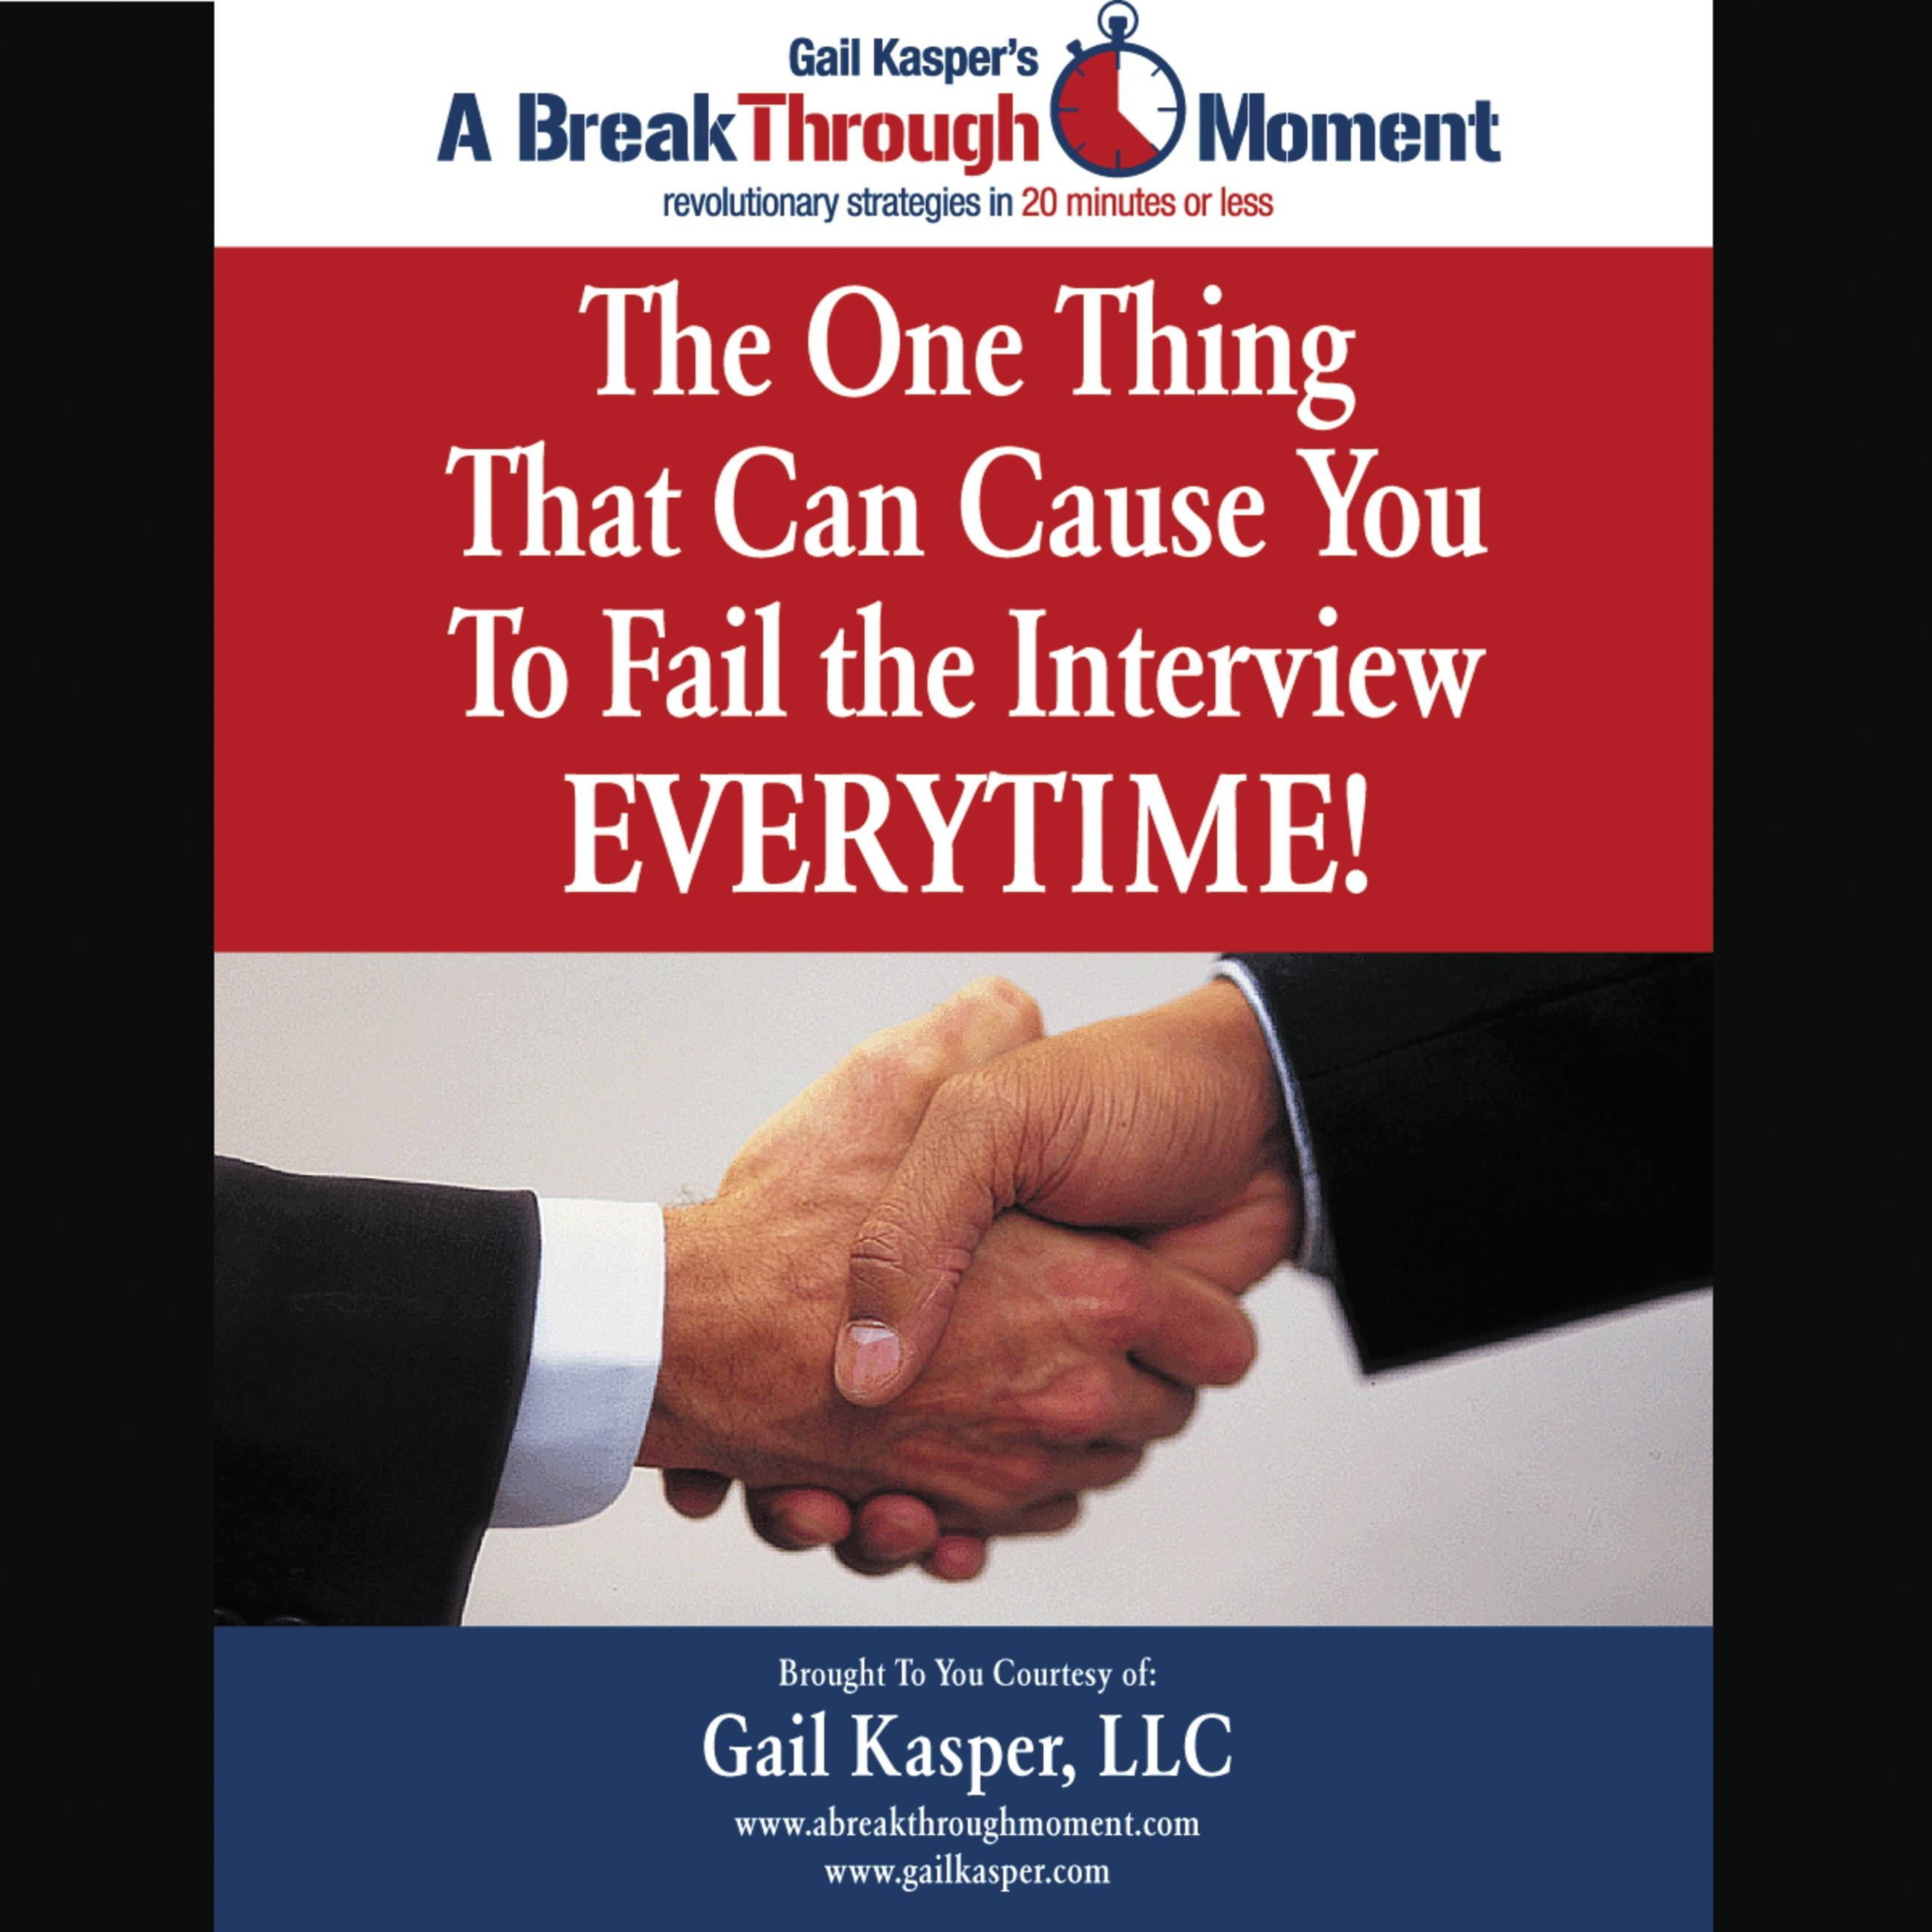 The One Thing That Can Cause You to Fail the Interview Every Time!